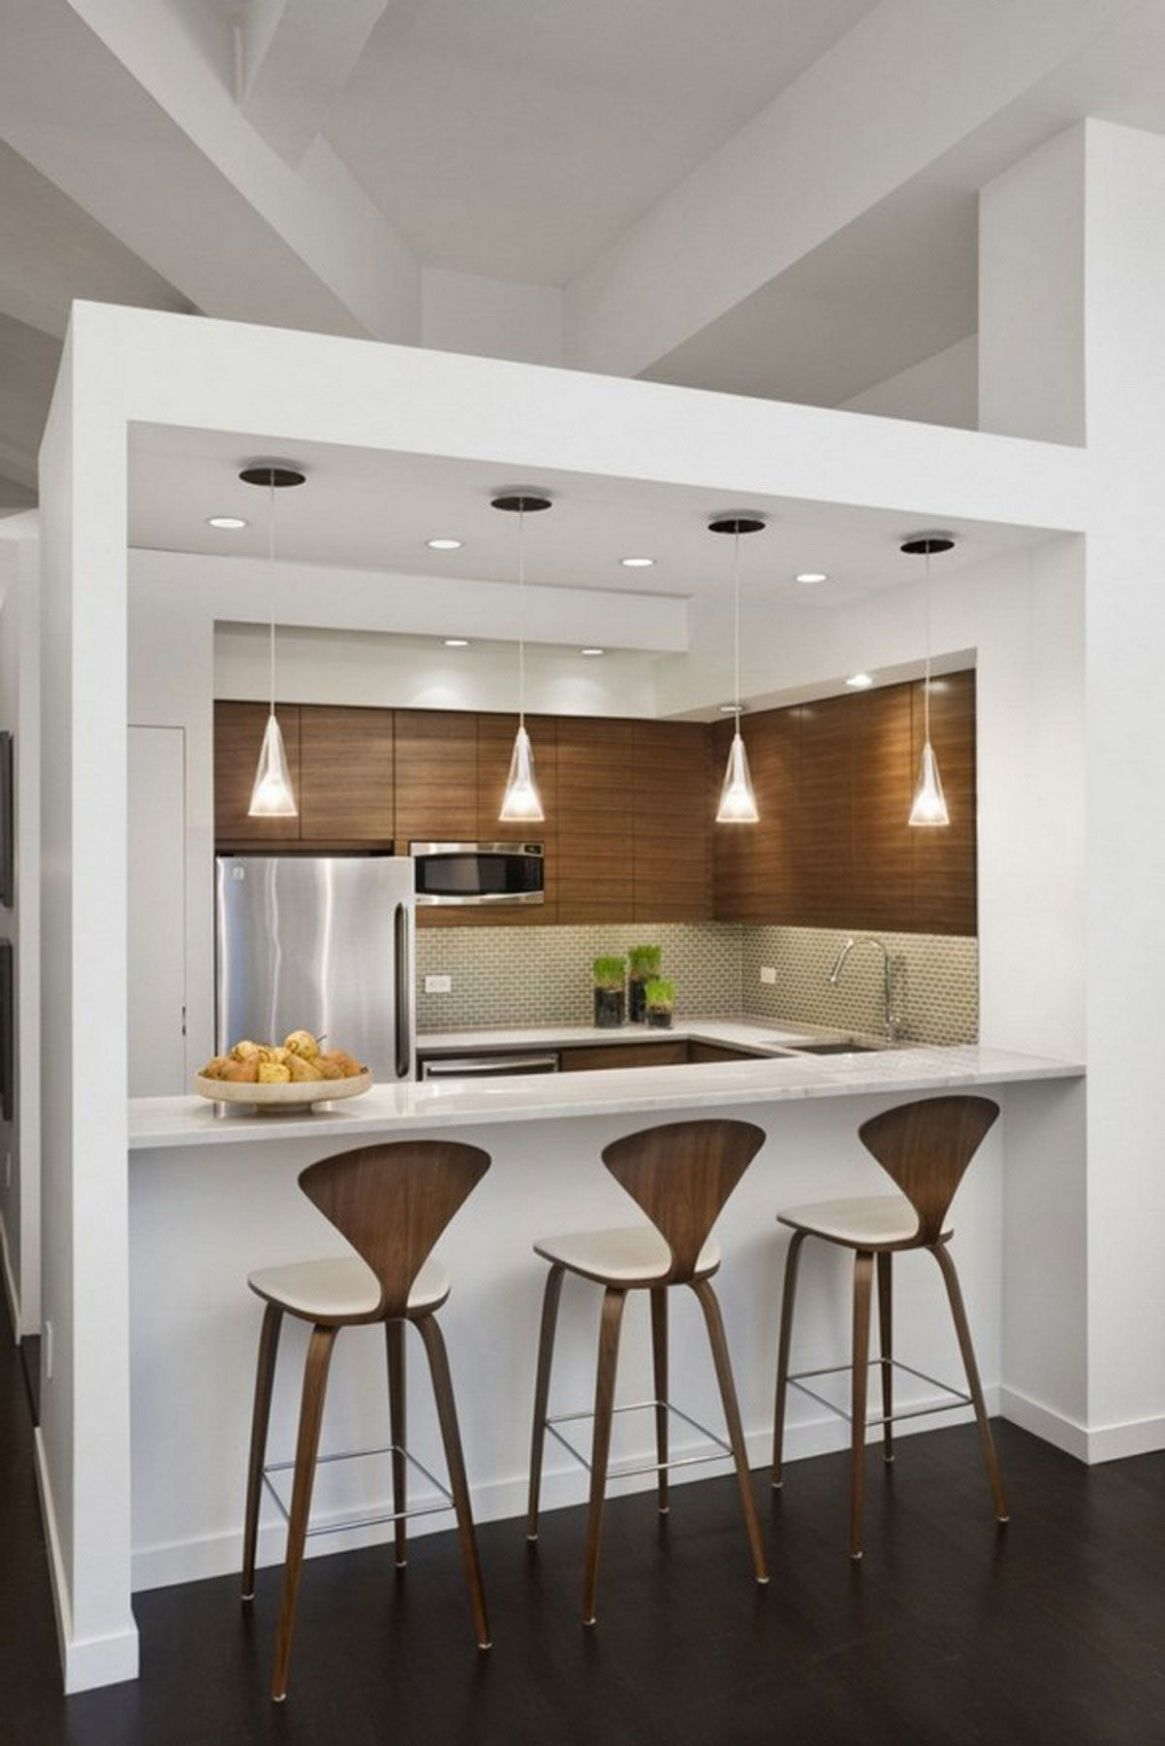 9 Small Kitchen Design Ideas Photo Gallery (With images ...